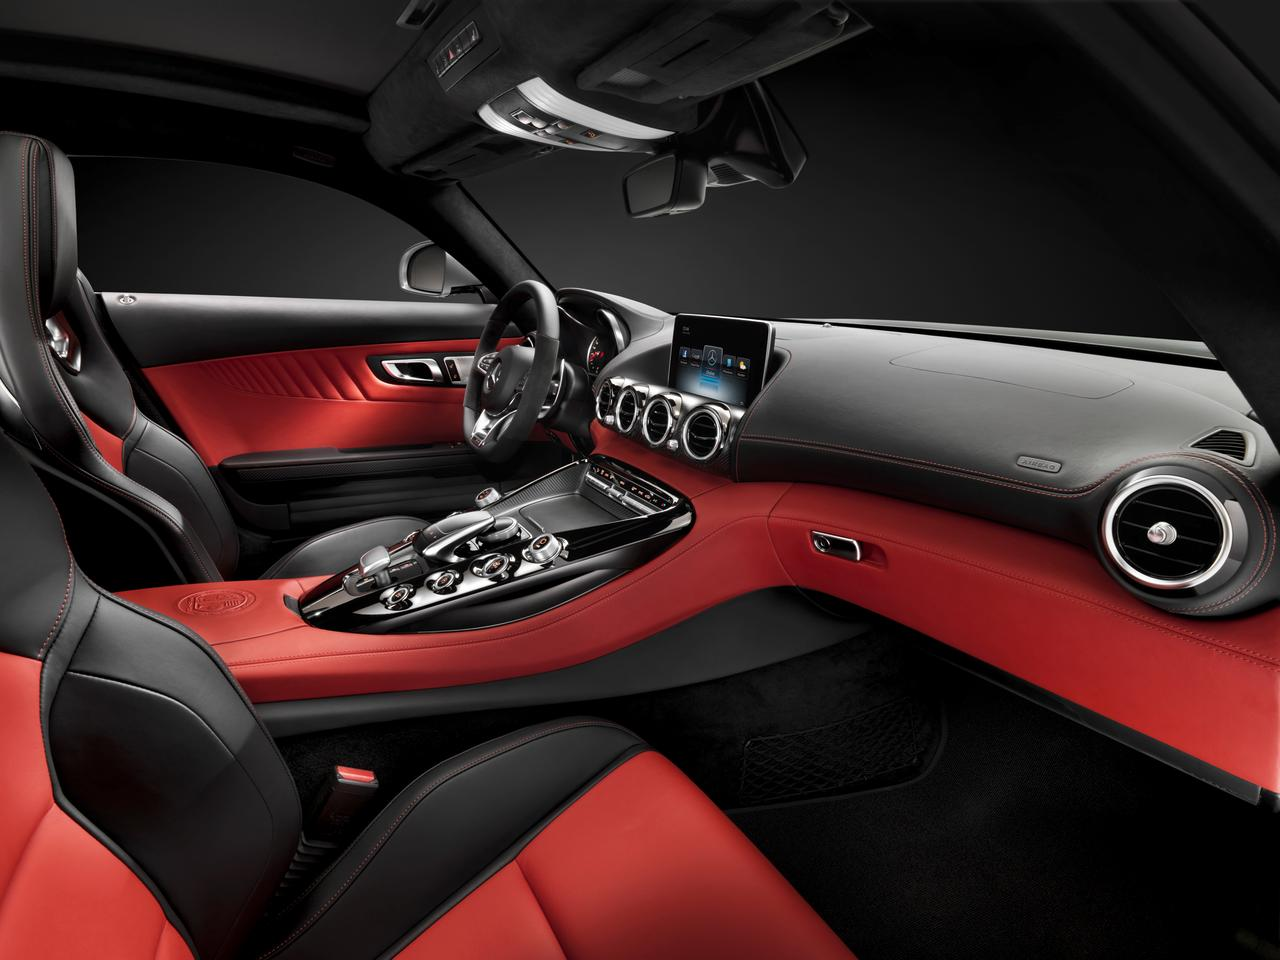 Mercedes is slowly teasing the details of its new AMG GT